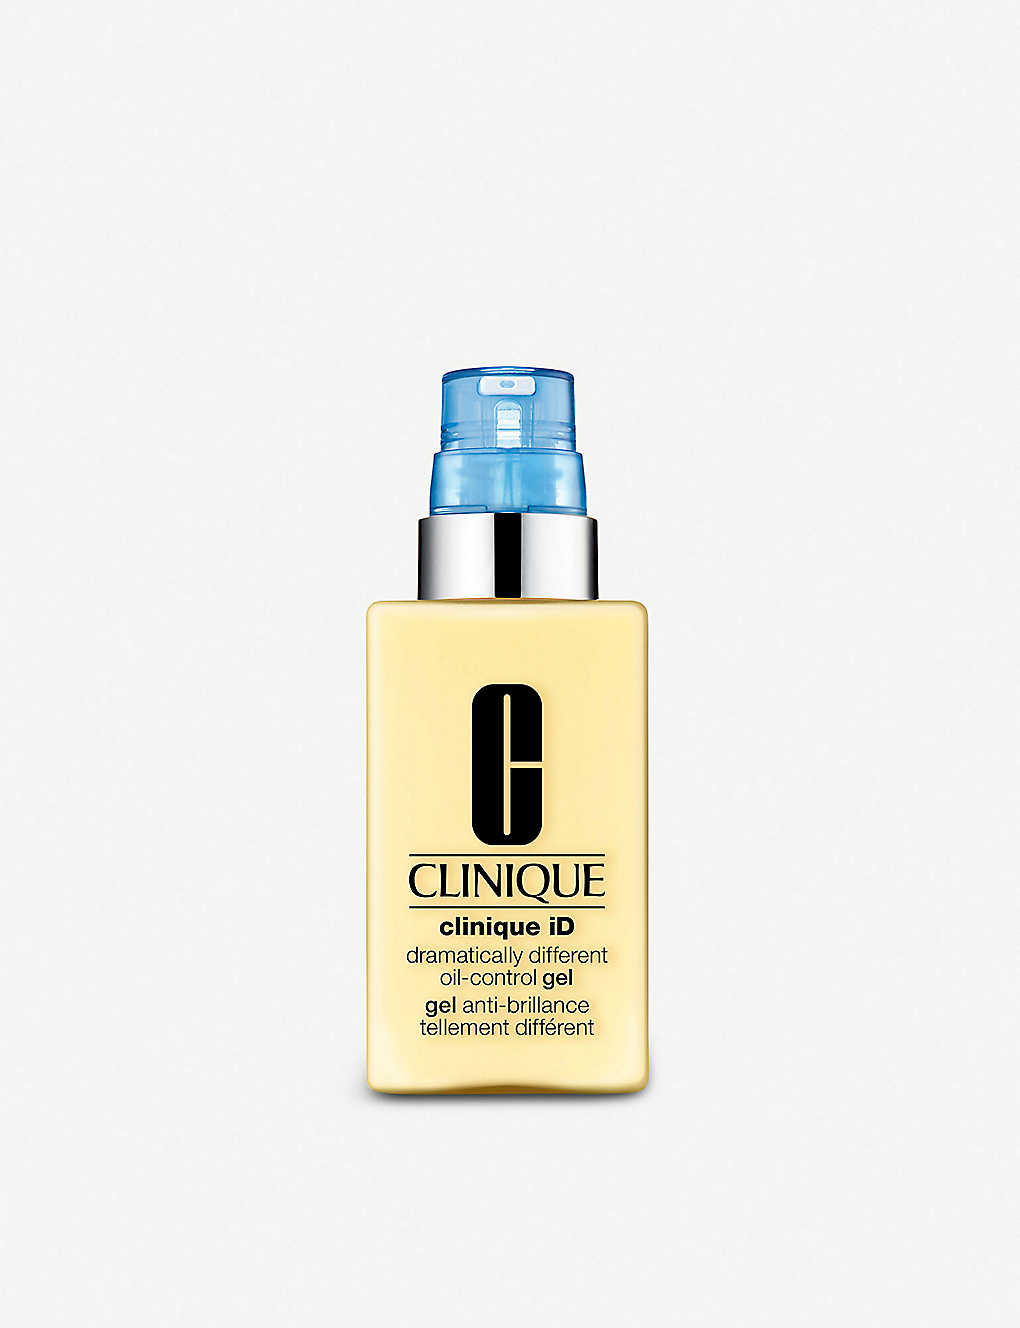 CLINIQUE: ID Dramatically Different oil-control gel Active Cartridge Pores and Uneven Skin and Texture 125ml